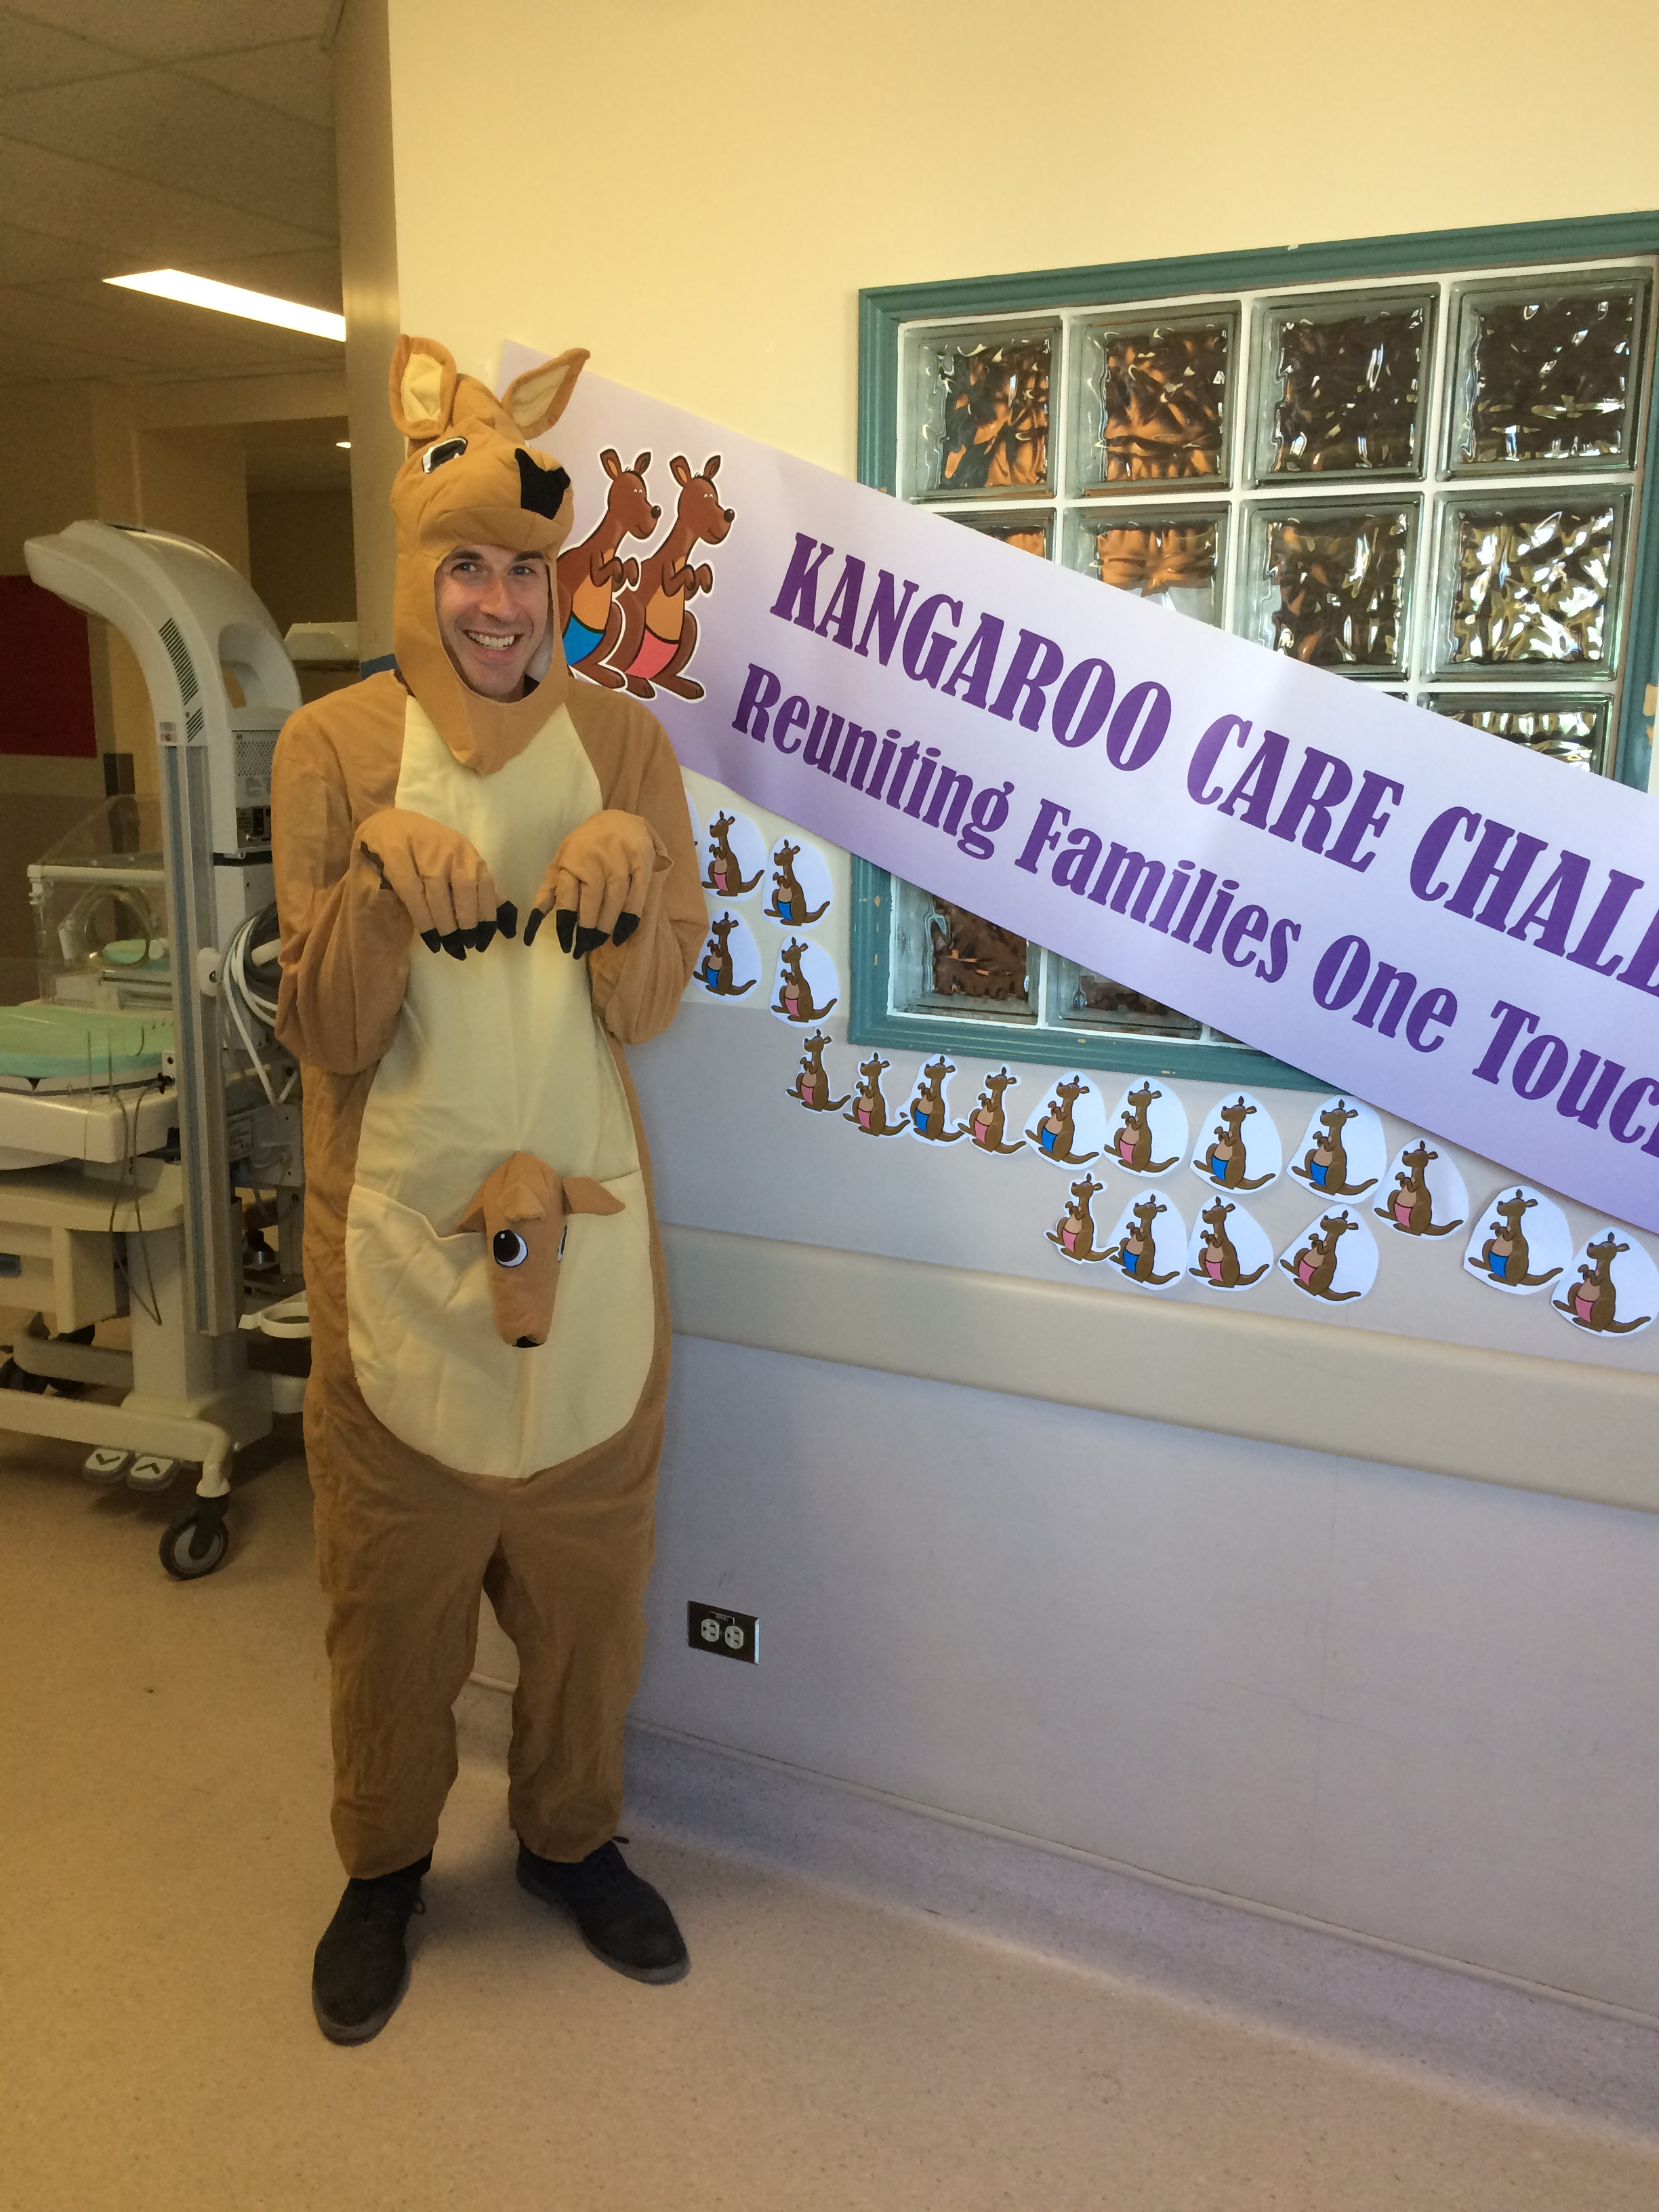 Isn't it time for a little Kangaroo in your NICU?